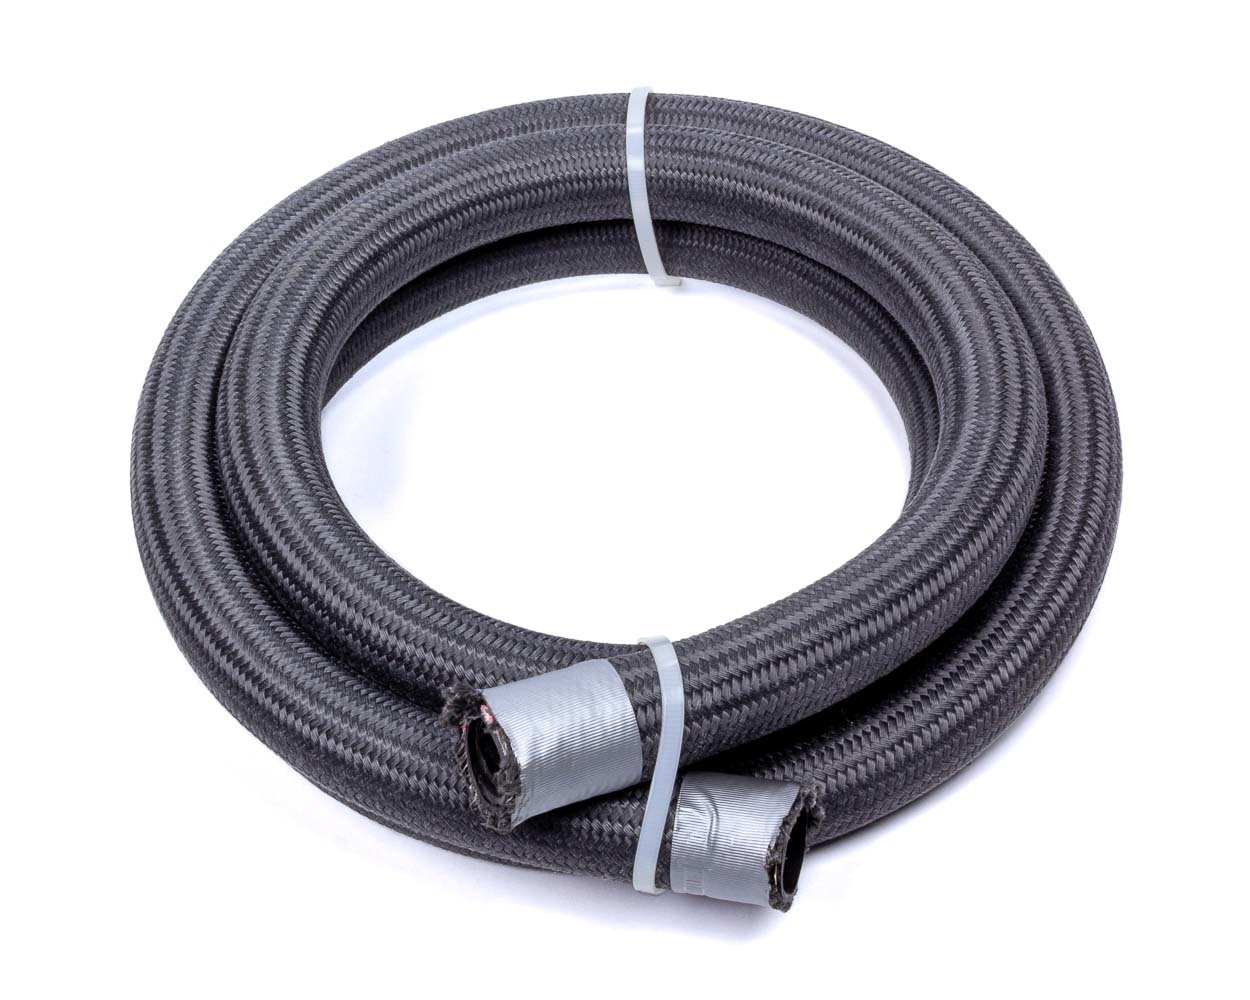 Fragola 2711512 Hose, 12 AN, 15 ft, Braided Fire Retardant Fabric, Wire Reinforced, PTFE, Black, Each